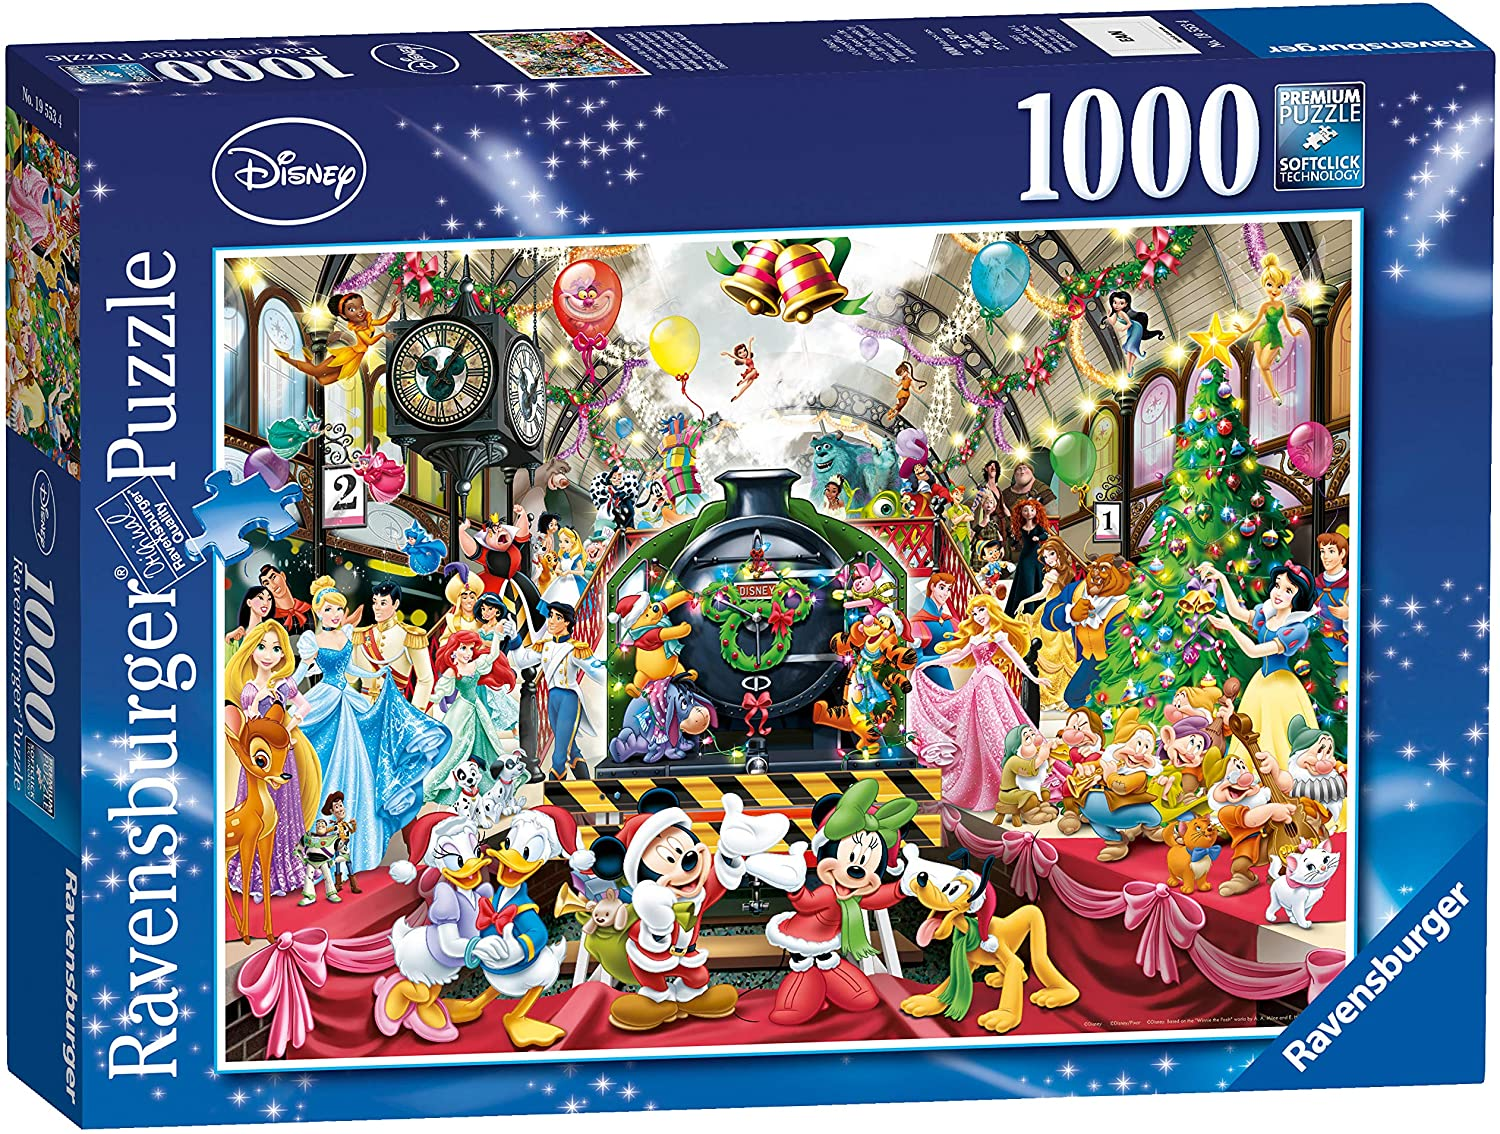 Ravensburger Disney Christmas 1000-Piece Large discharge sale Max 87% OFF Jigsaw Puzzle